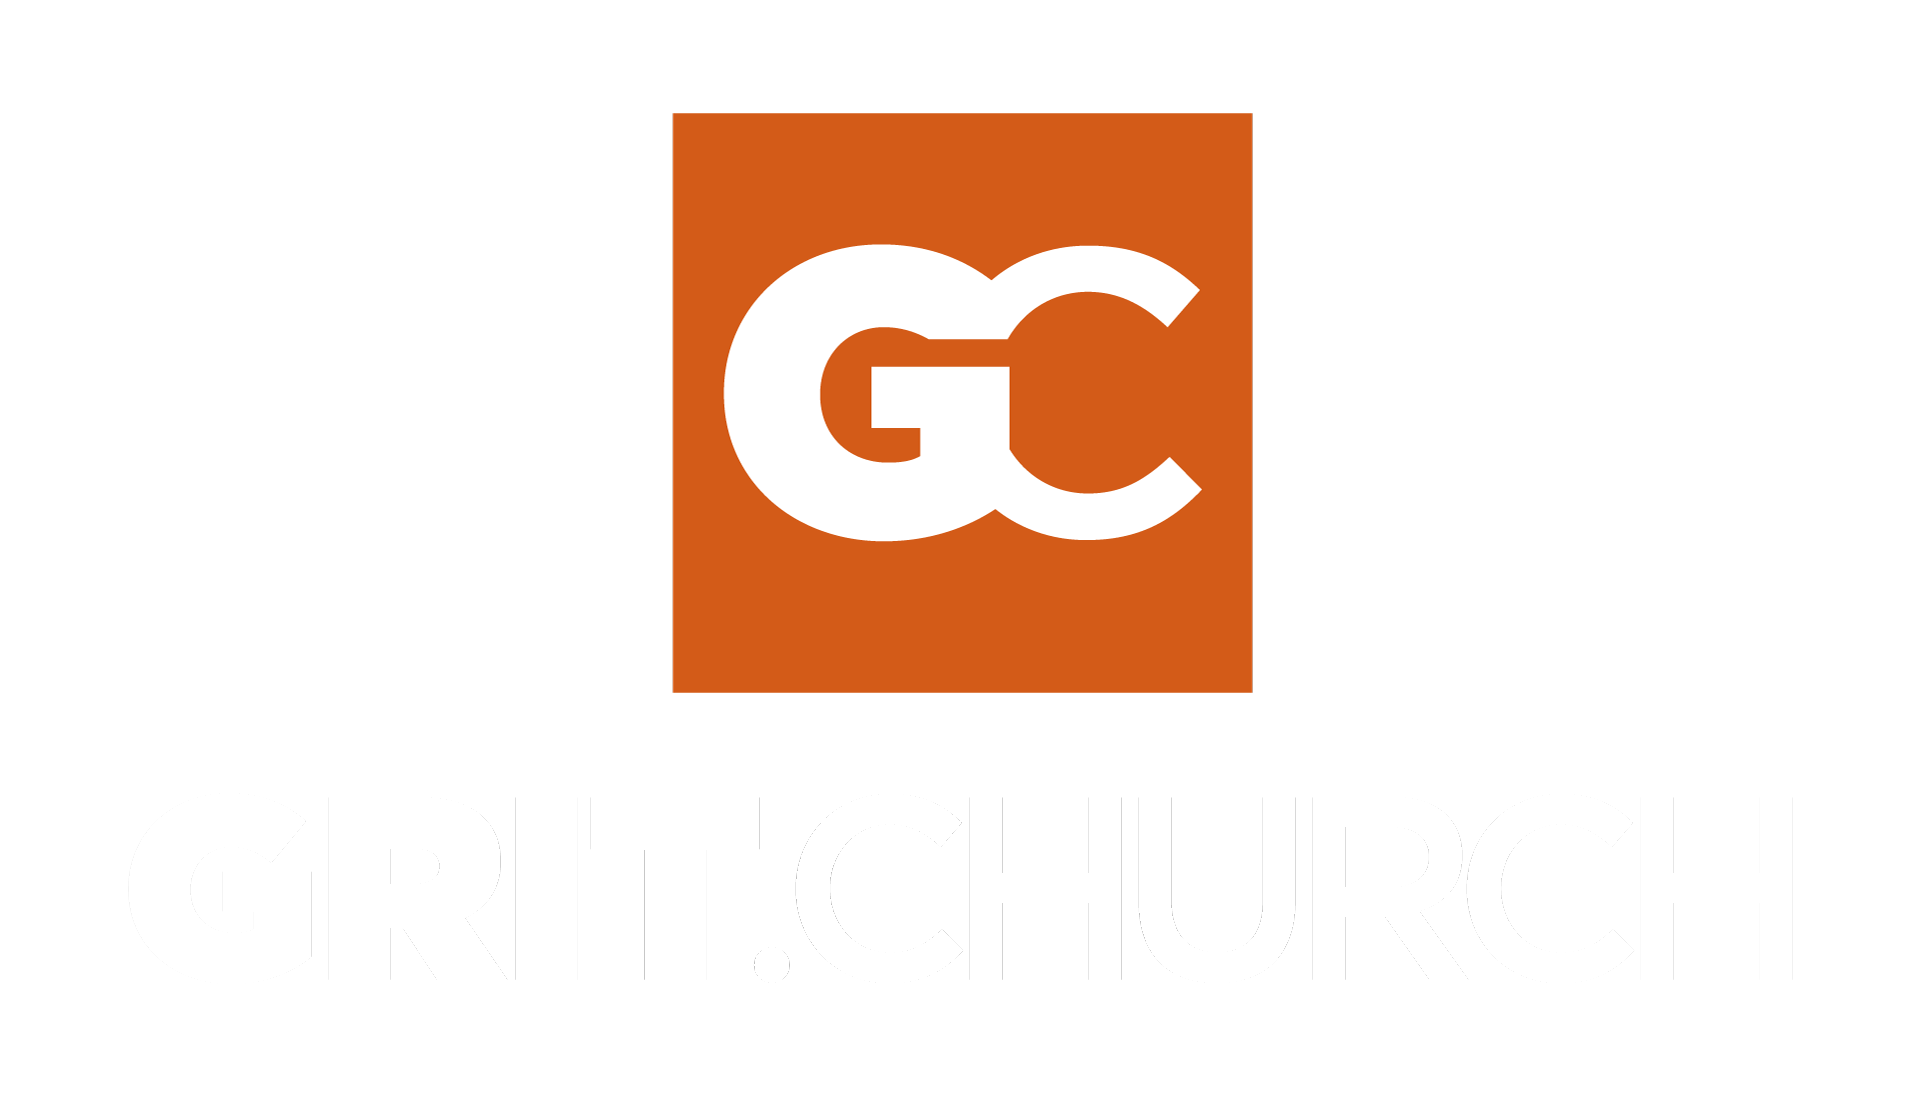 grit.church